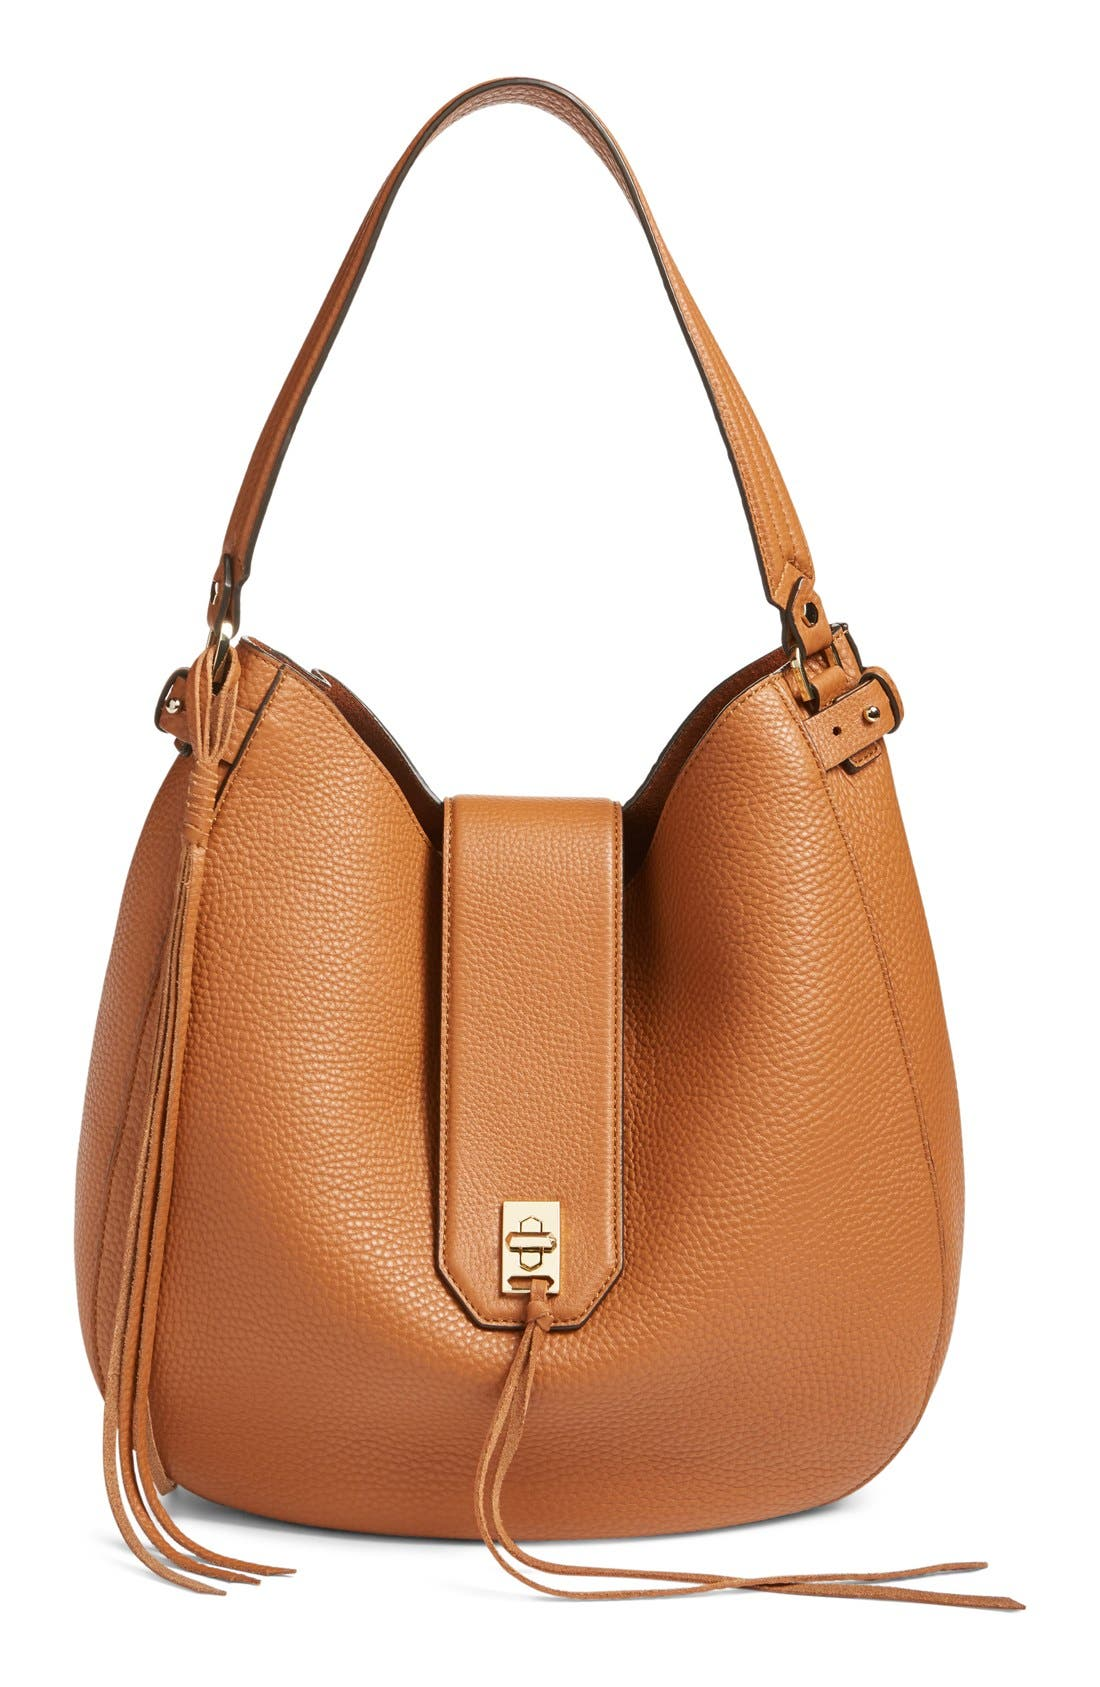 Alternate Image 1 Selected - Rebecca Minkoff 'Darren' Leather Hobo Bag